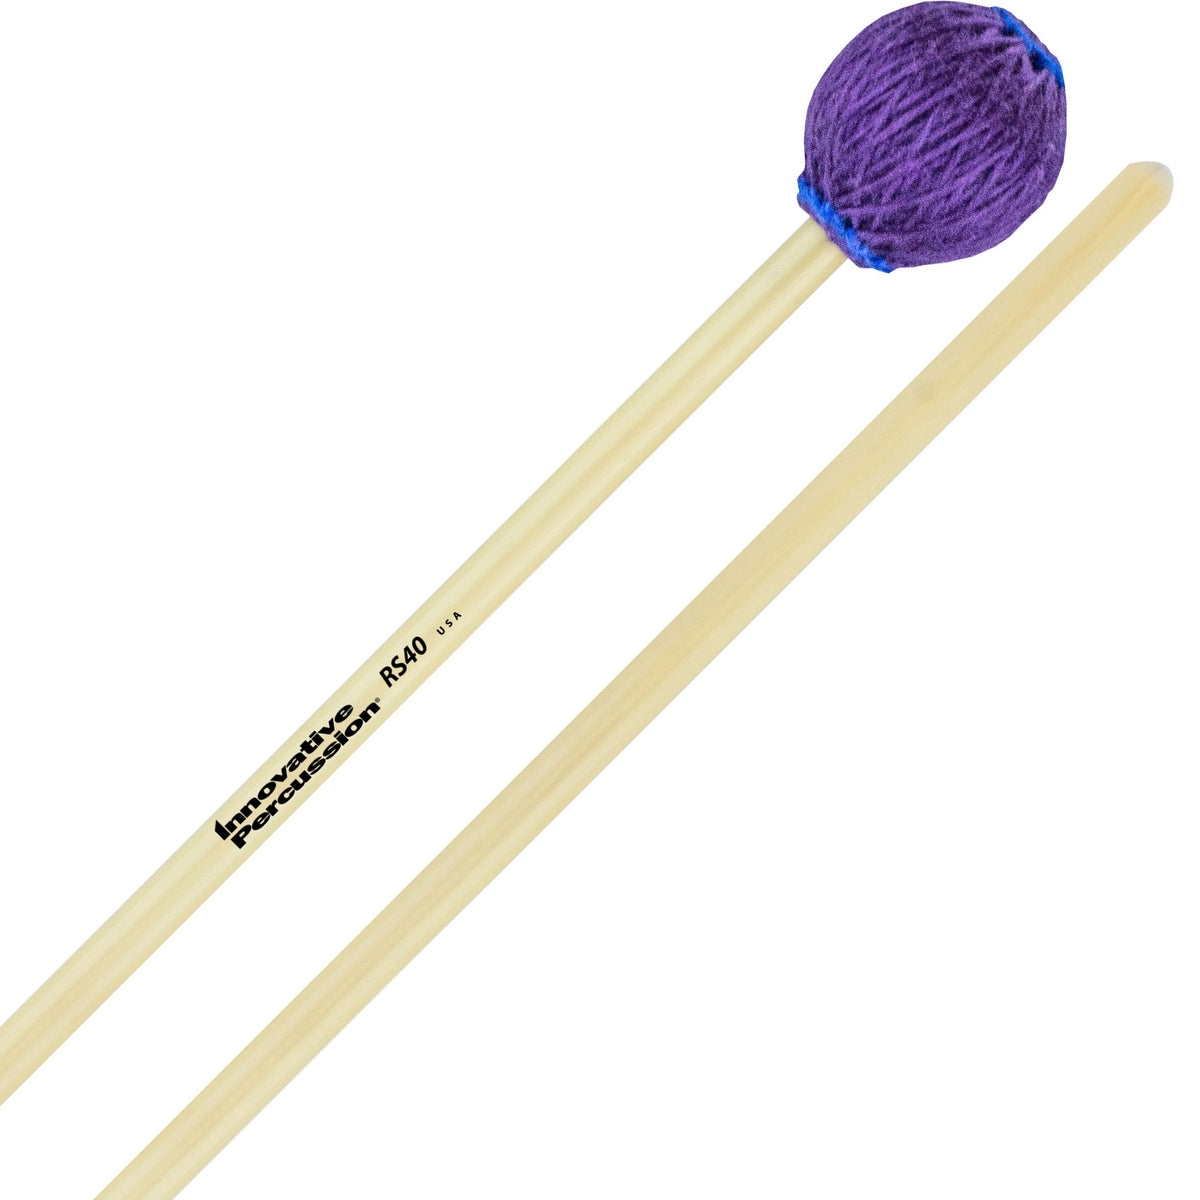 Innovative Percussion - Rattan Series Concert Vibraphone/Marimba Mallets-Percussion-Innovative Percussion-RS40 Hard-Music Elements